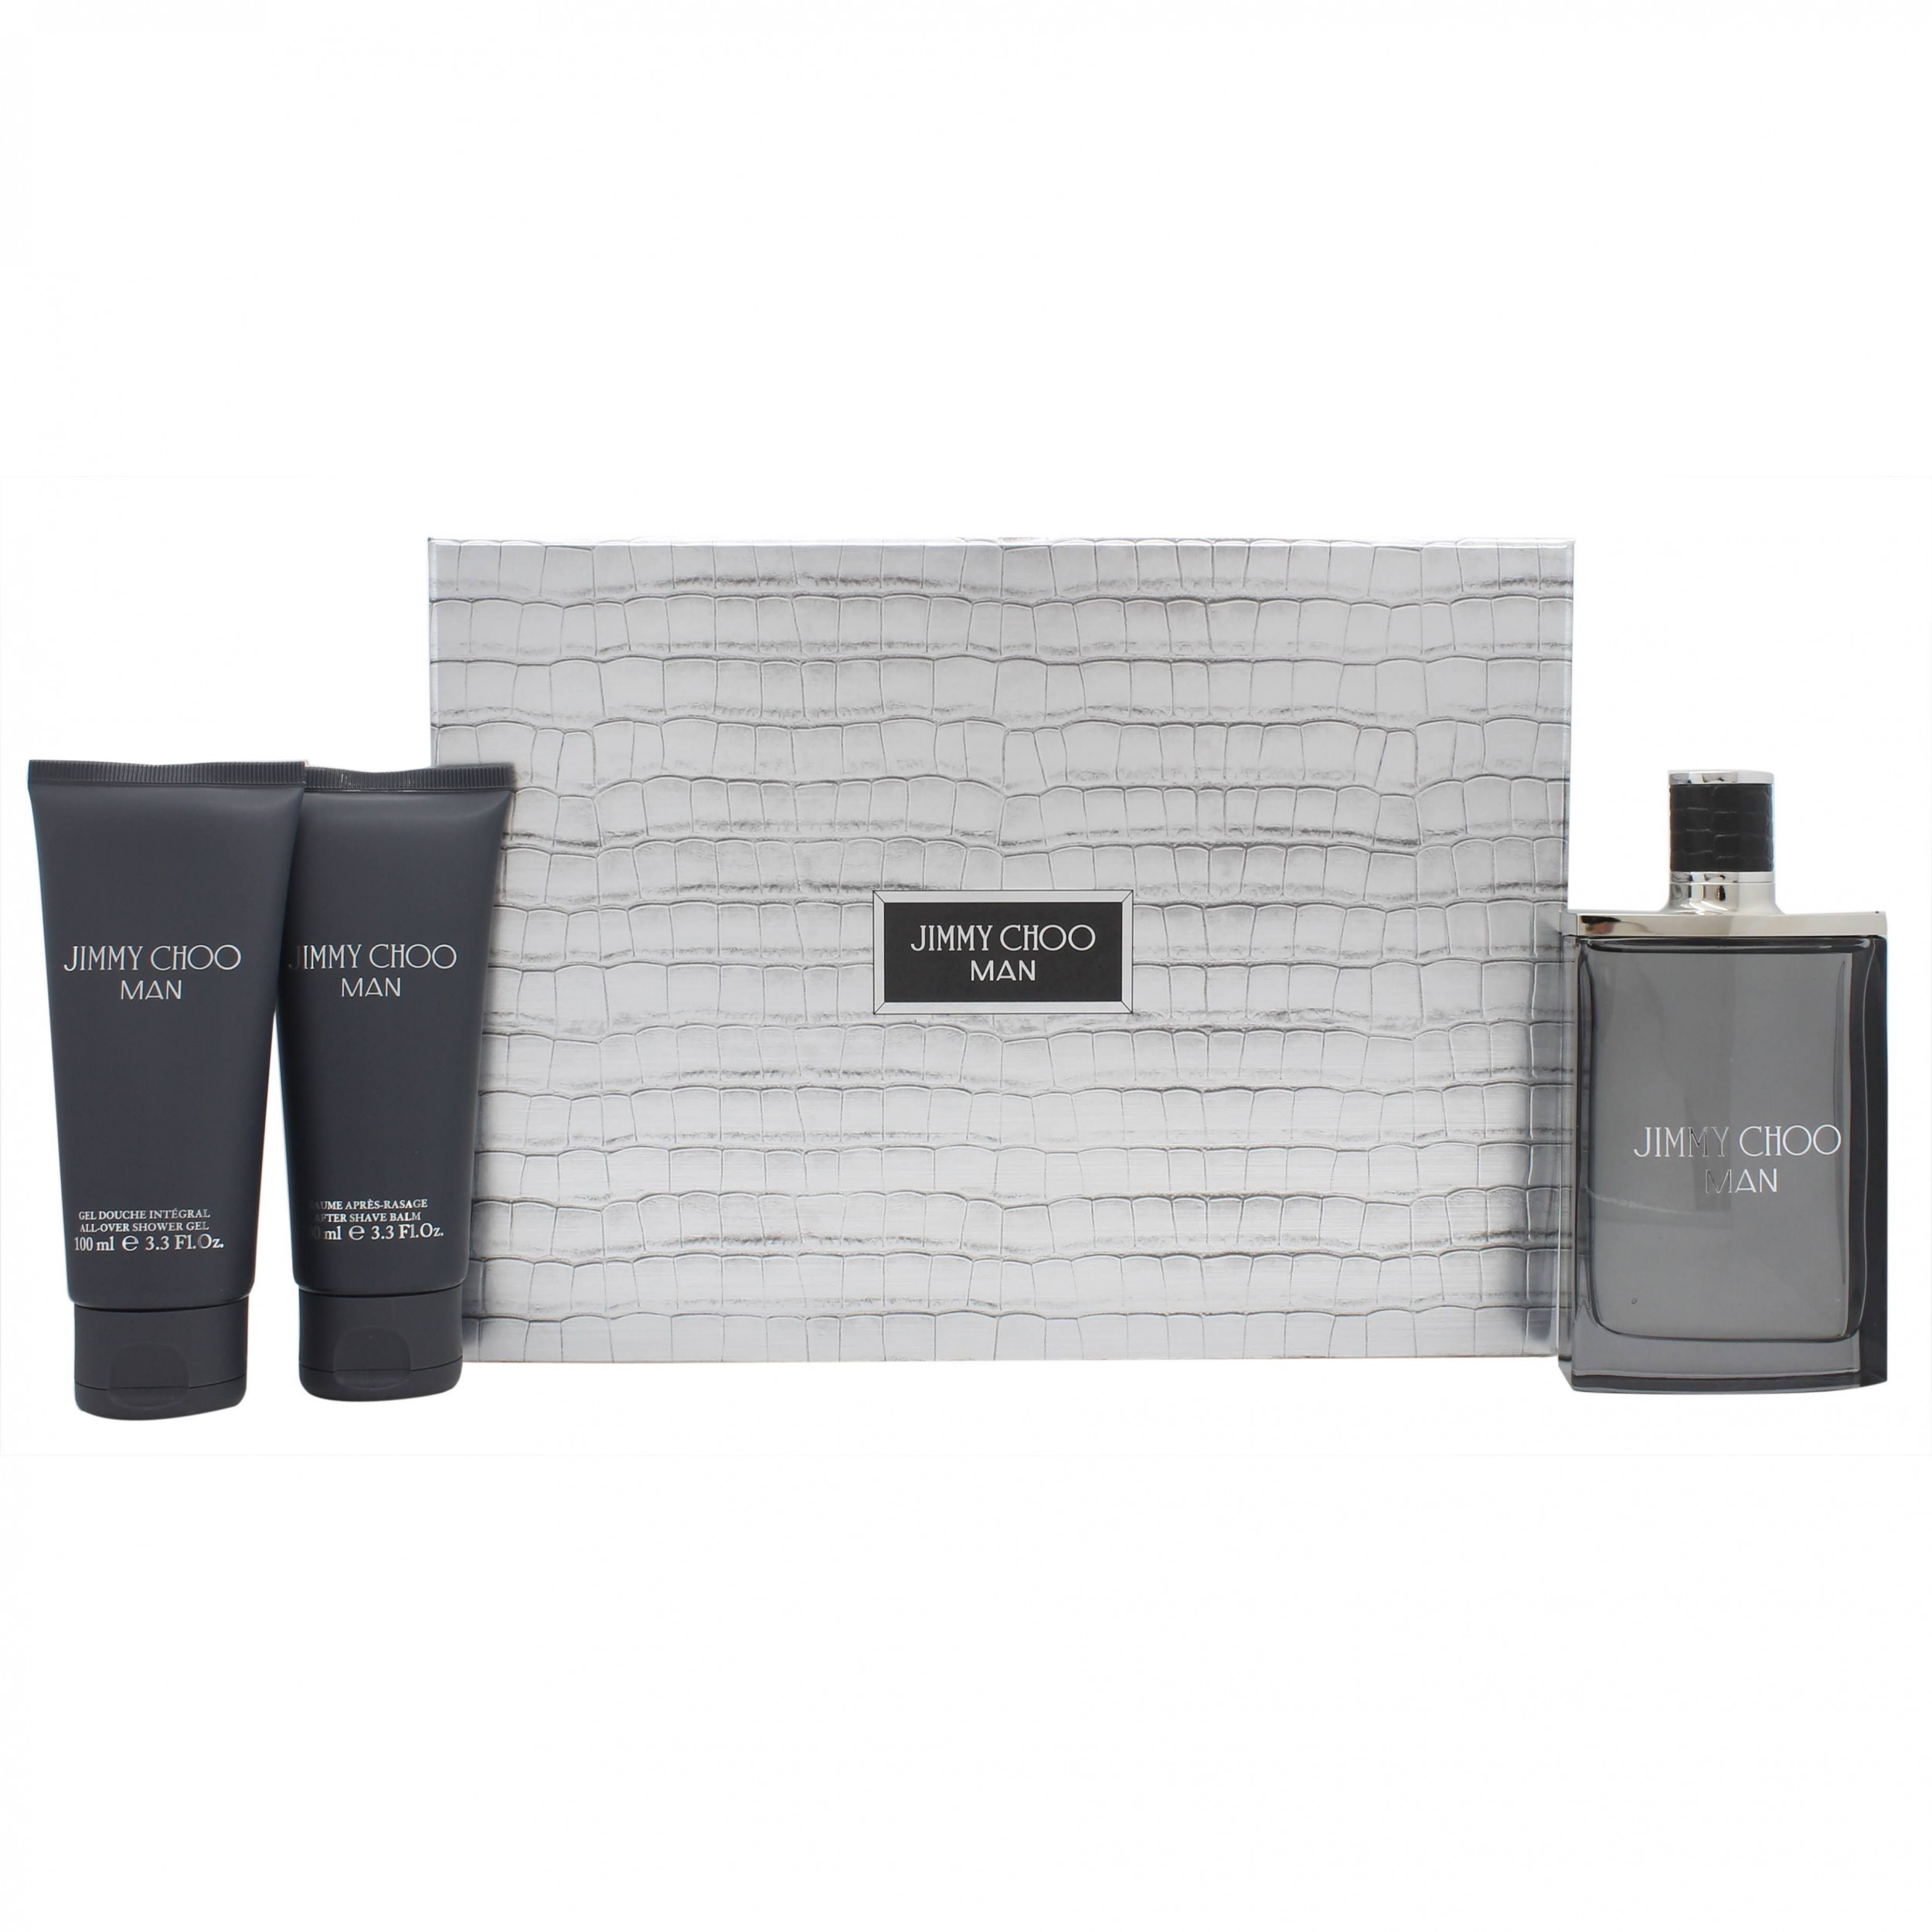 JIMMY CHOO - Coffret Man 100ml